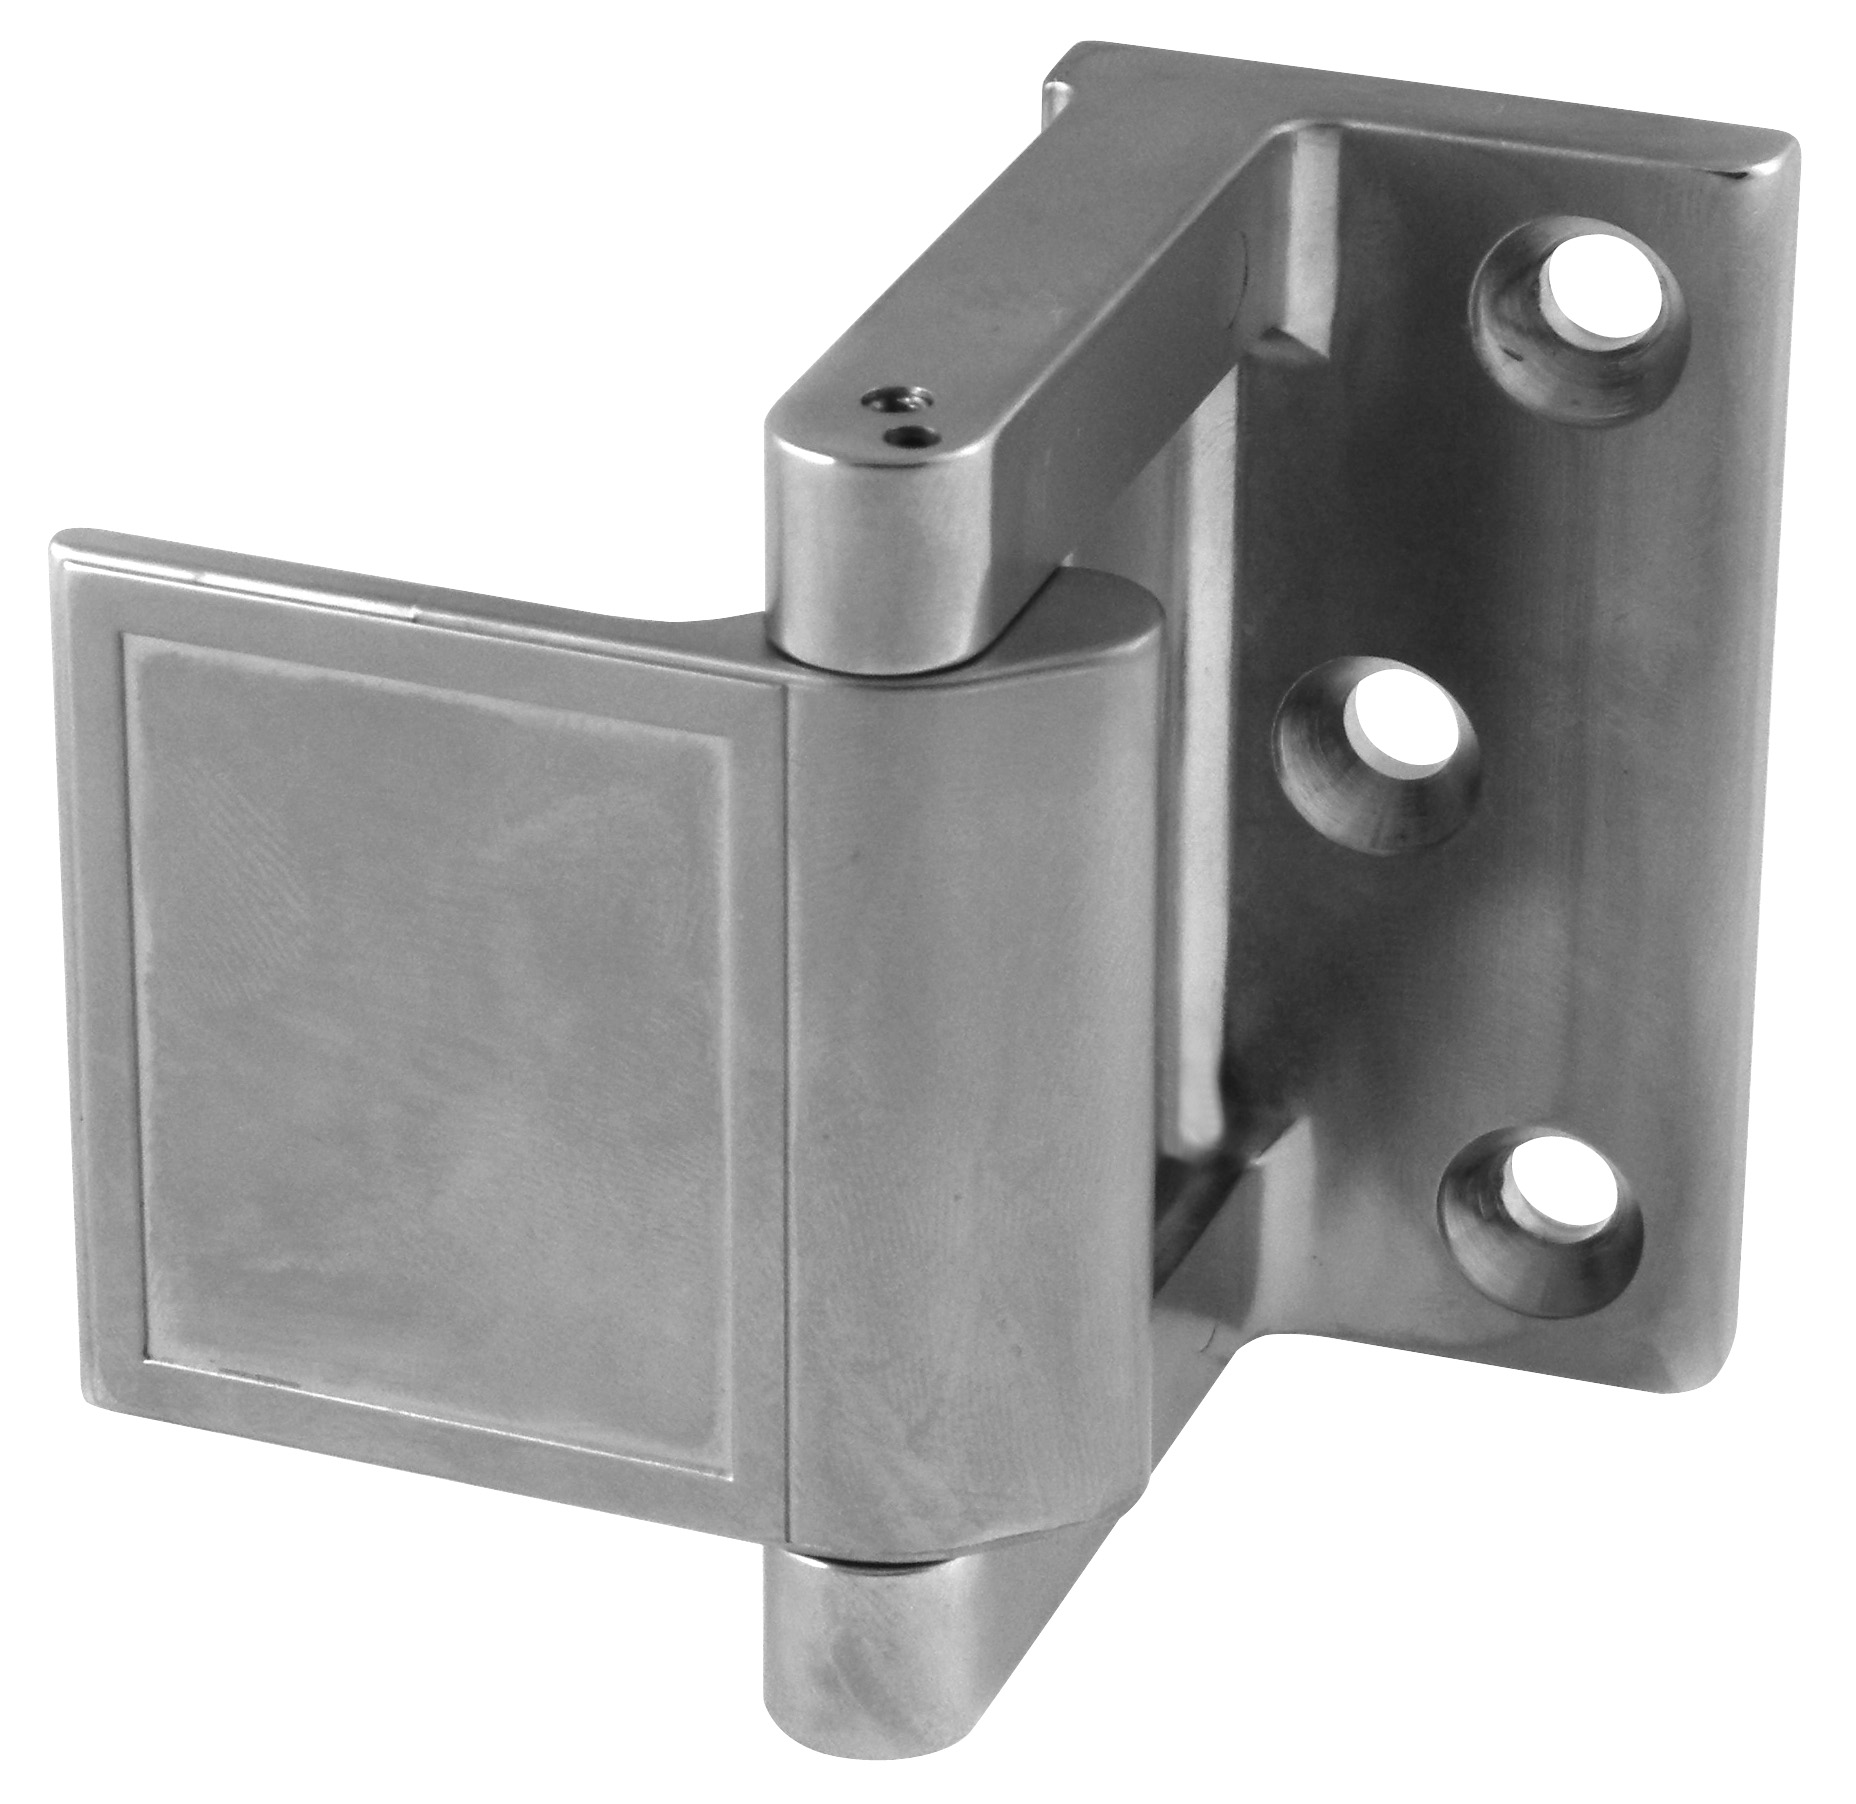 sc 1 st  Builders Area & Rockwood PDL Privacy Door Latch | FinestHardware.com